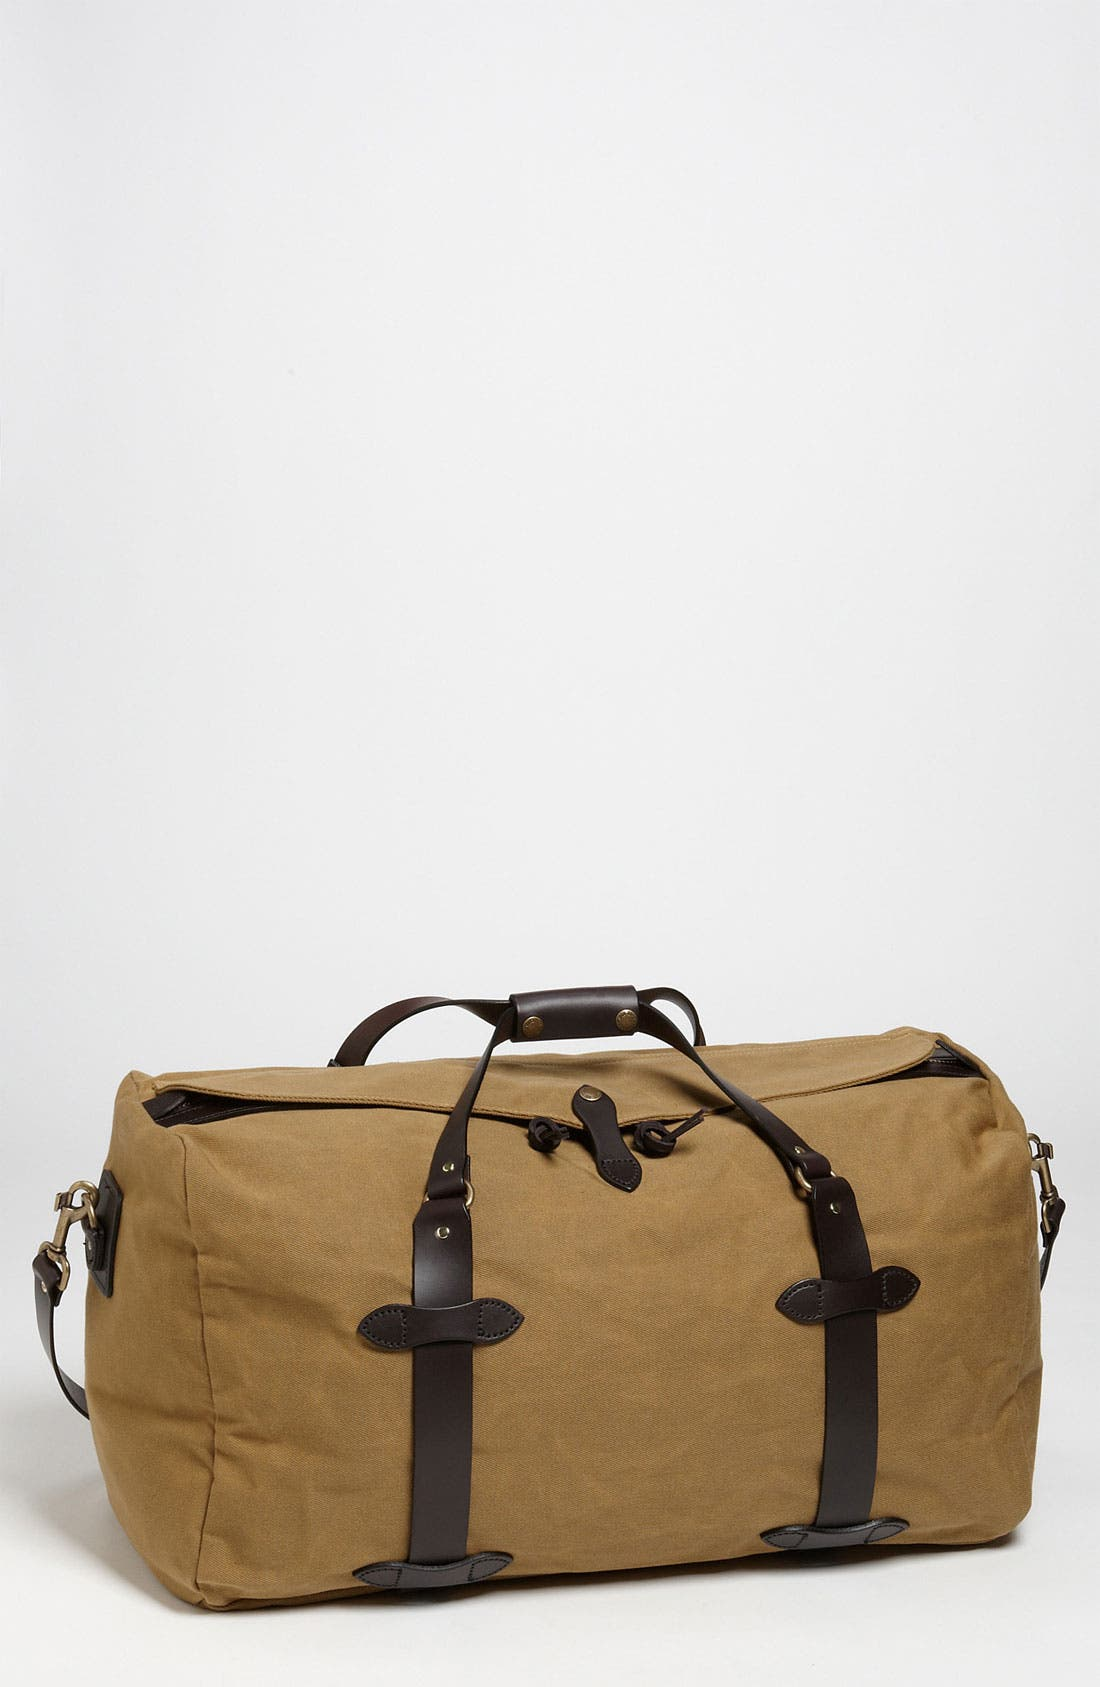 Main Image - Filson Medium Duffel Bag